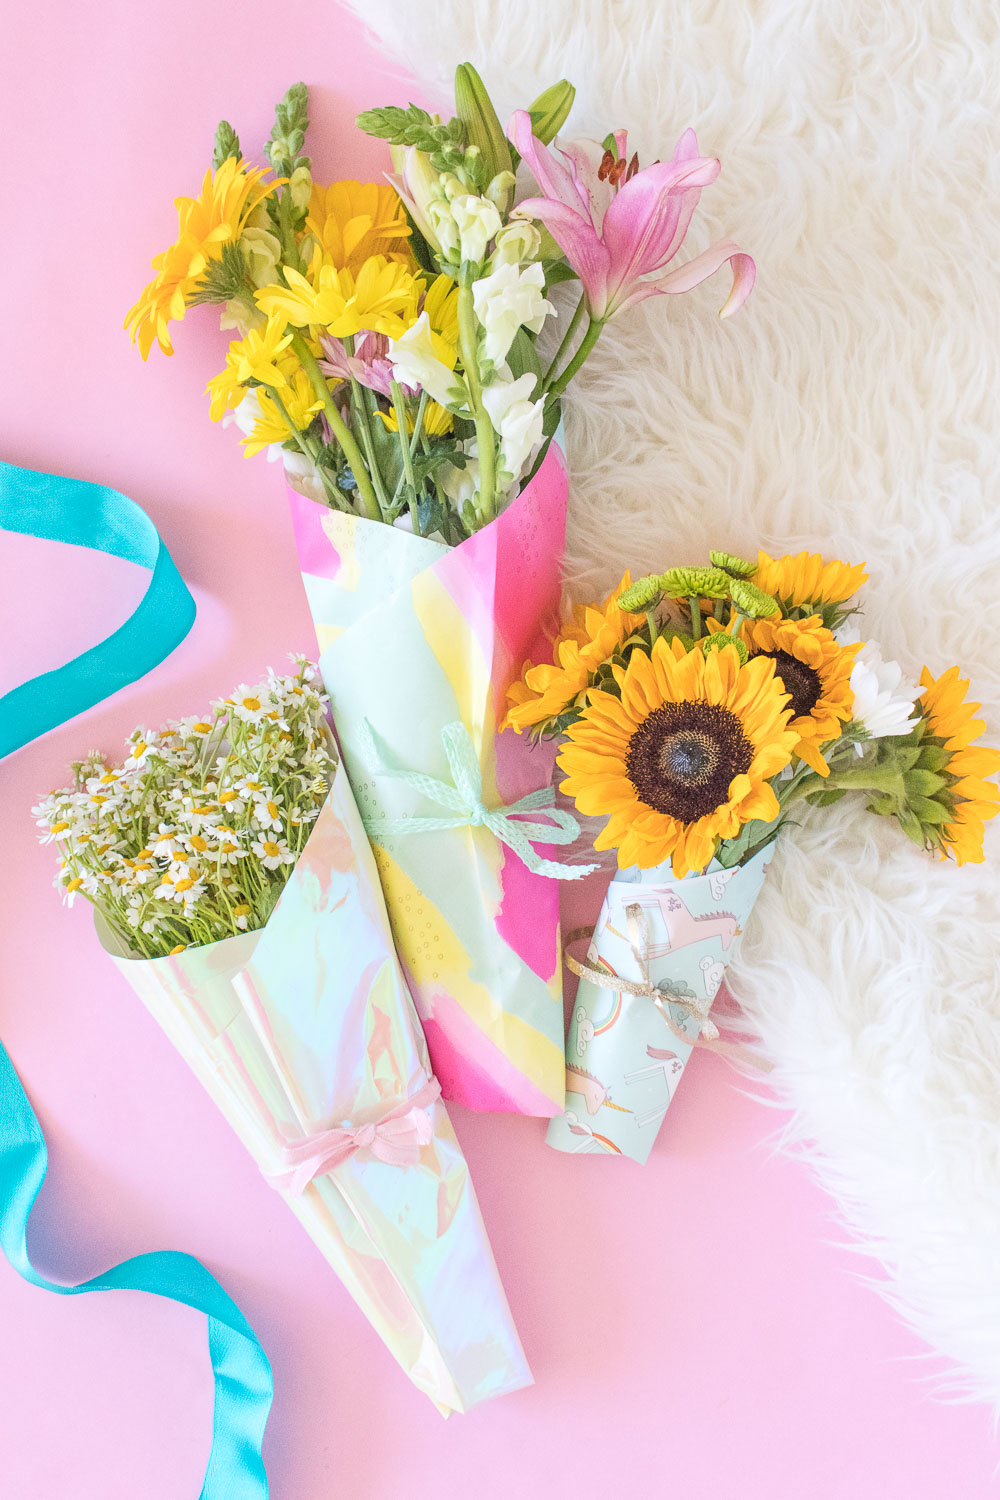 How To Wrap A Bouquet Of Flowers With Wrapping Paper